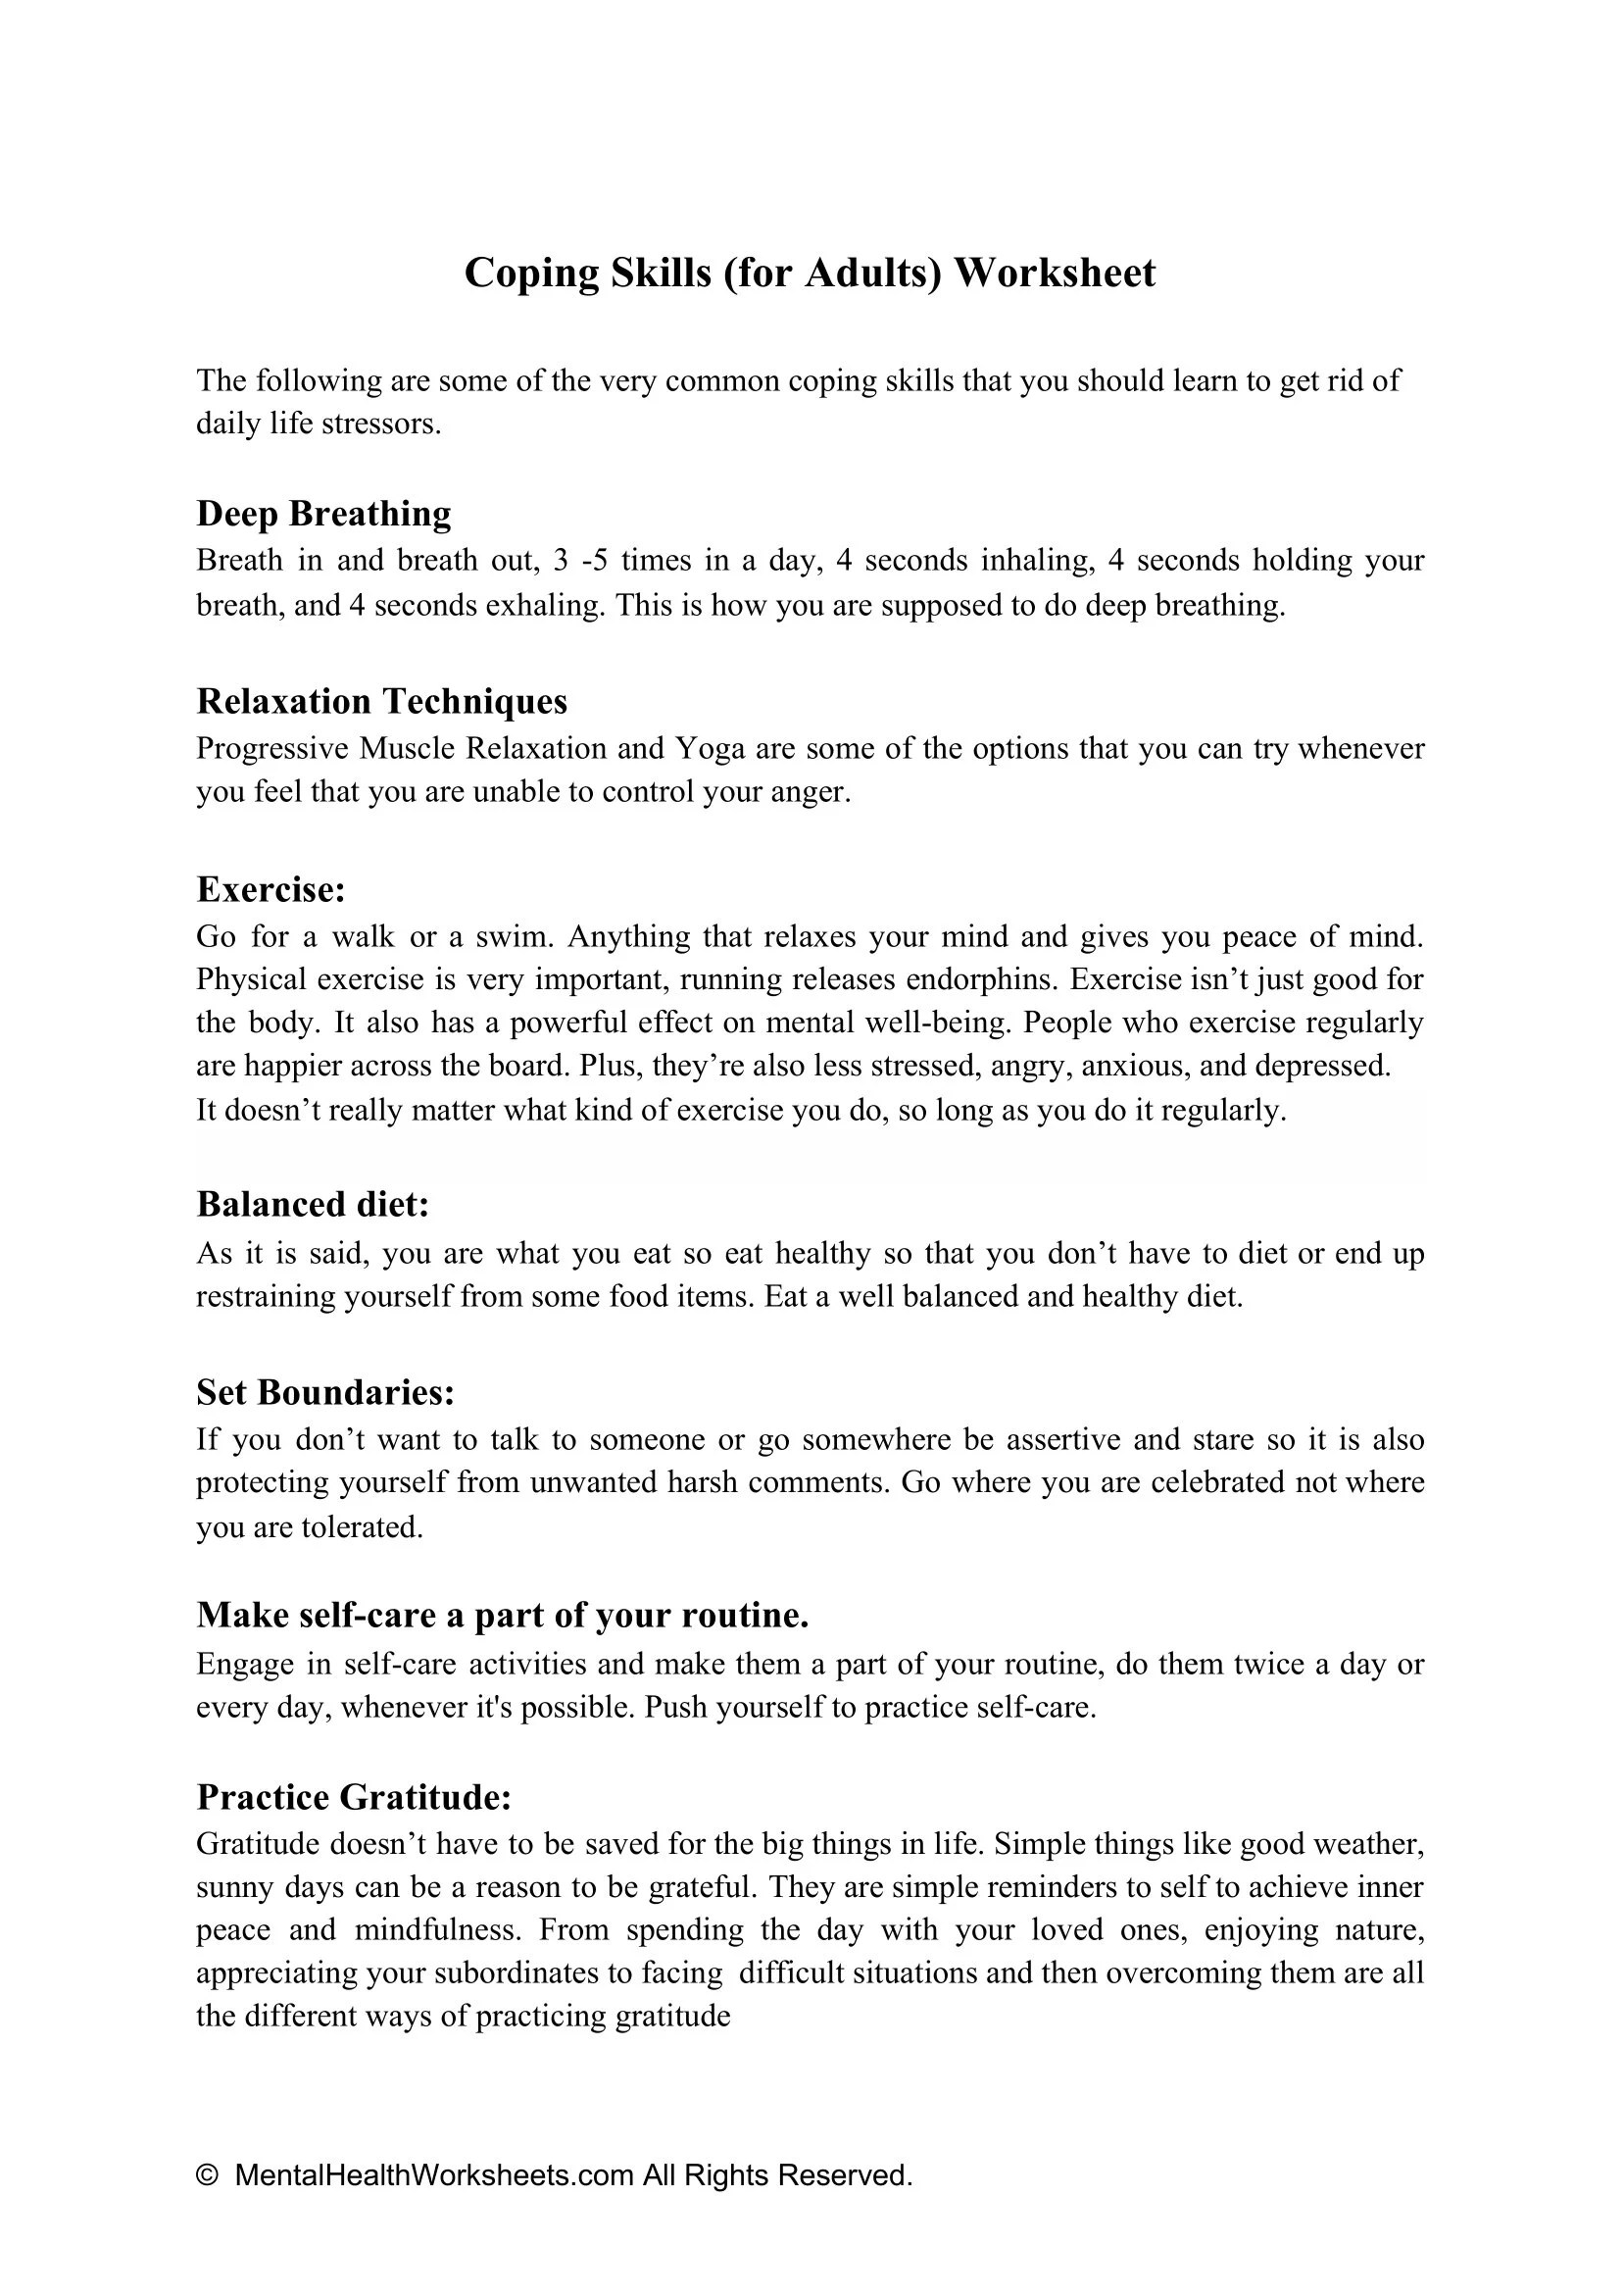 Coping Skills For Adults Worksheet